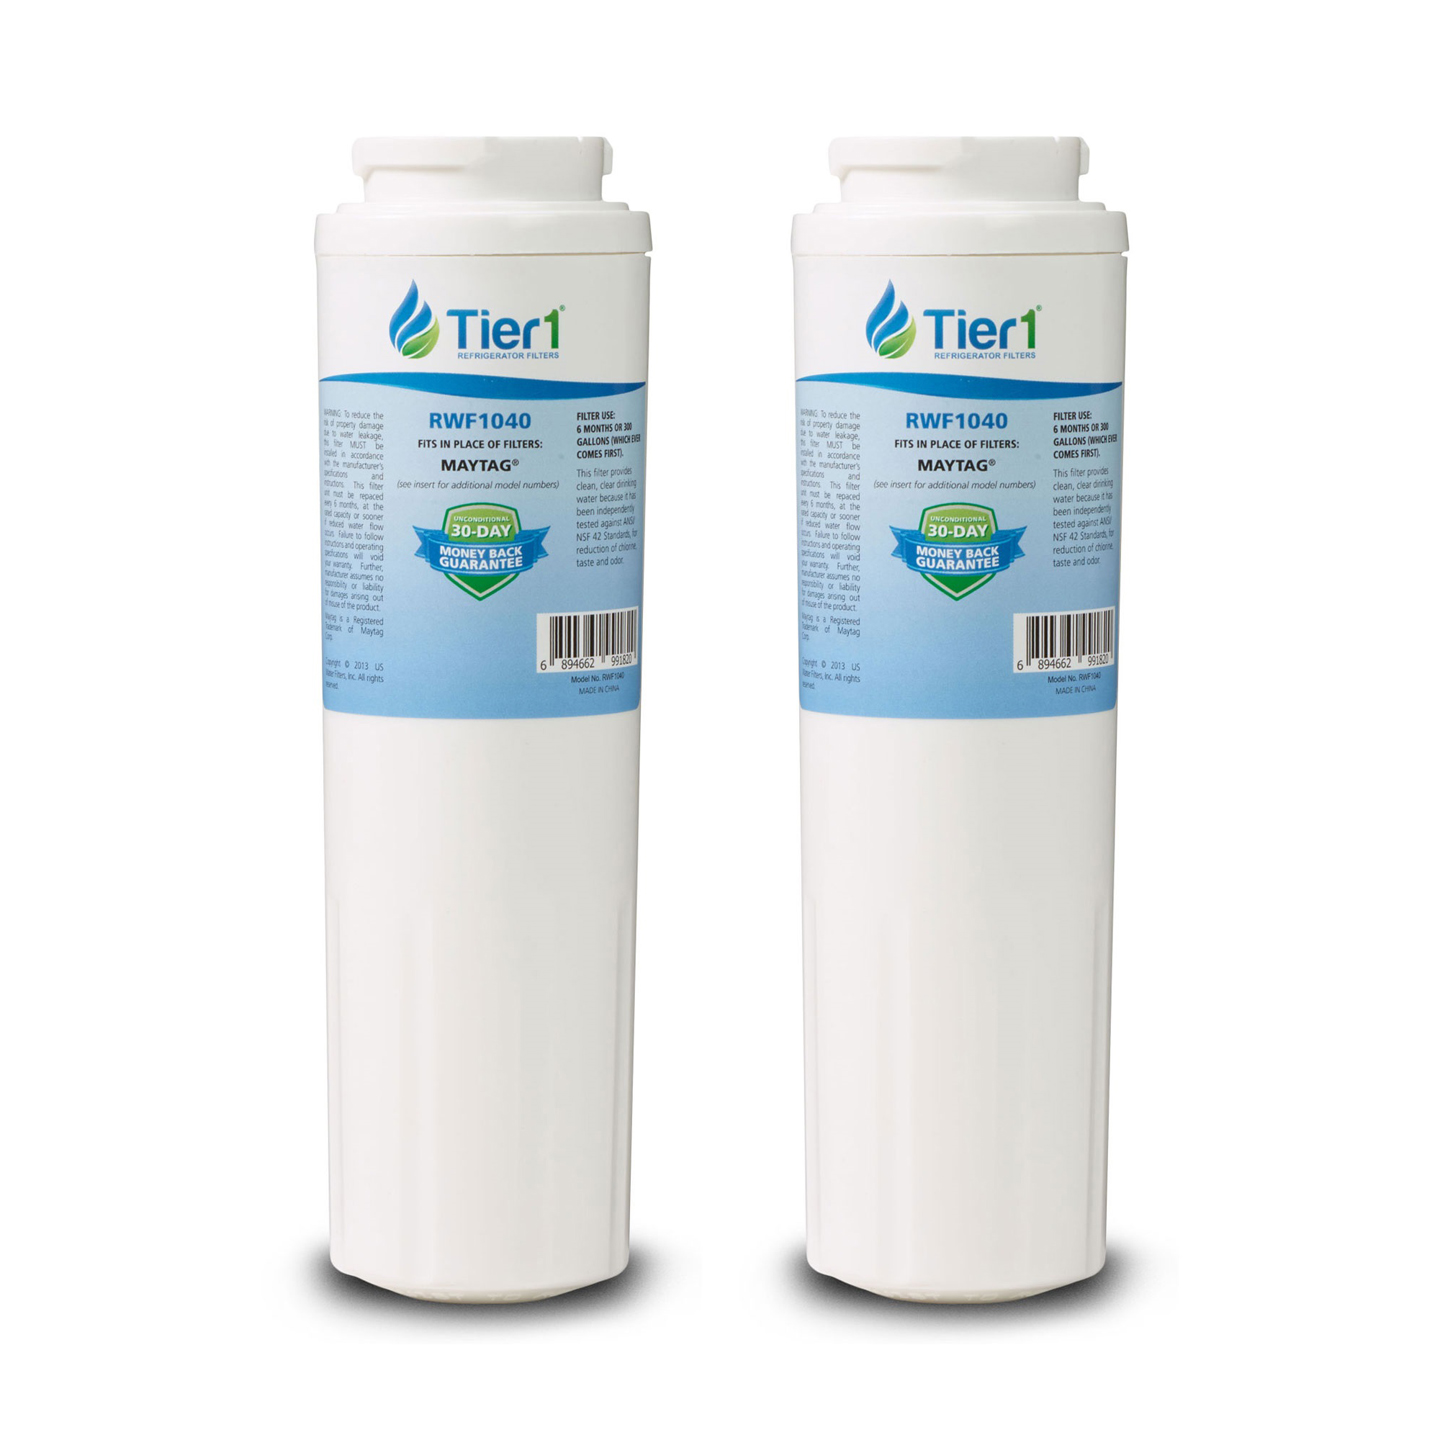 EDR4RXD1 EveryDrop UKF8001 Maytag Comparable Refrigerator Water Filter Replacement By Tier1 (2-Pack) TIER1_RWF1040_TY_2_PACK